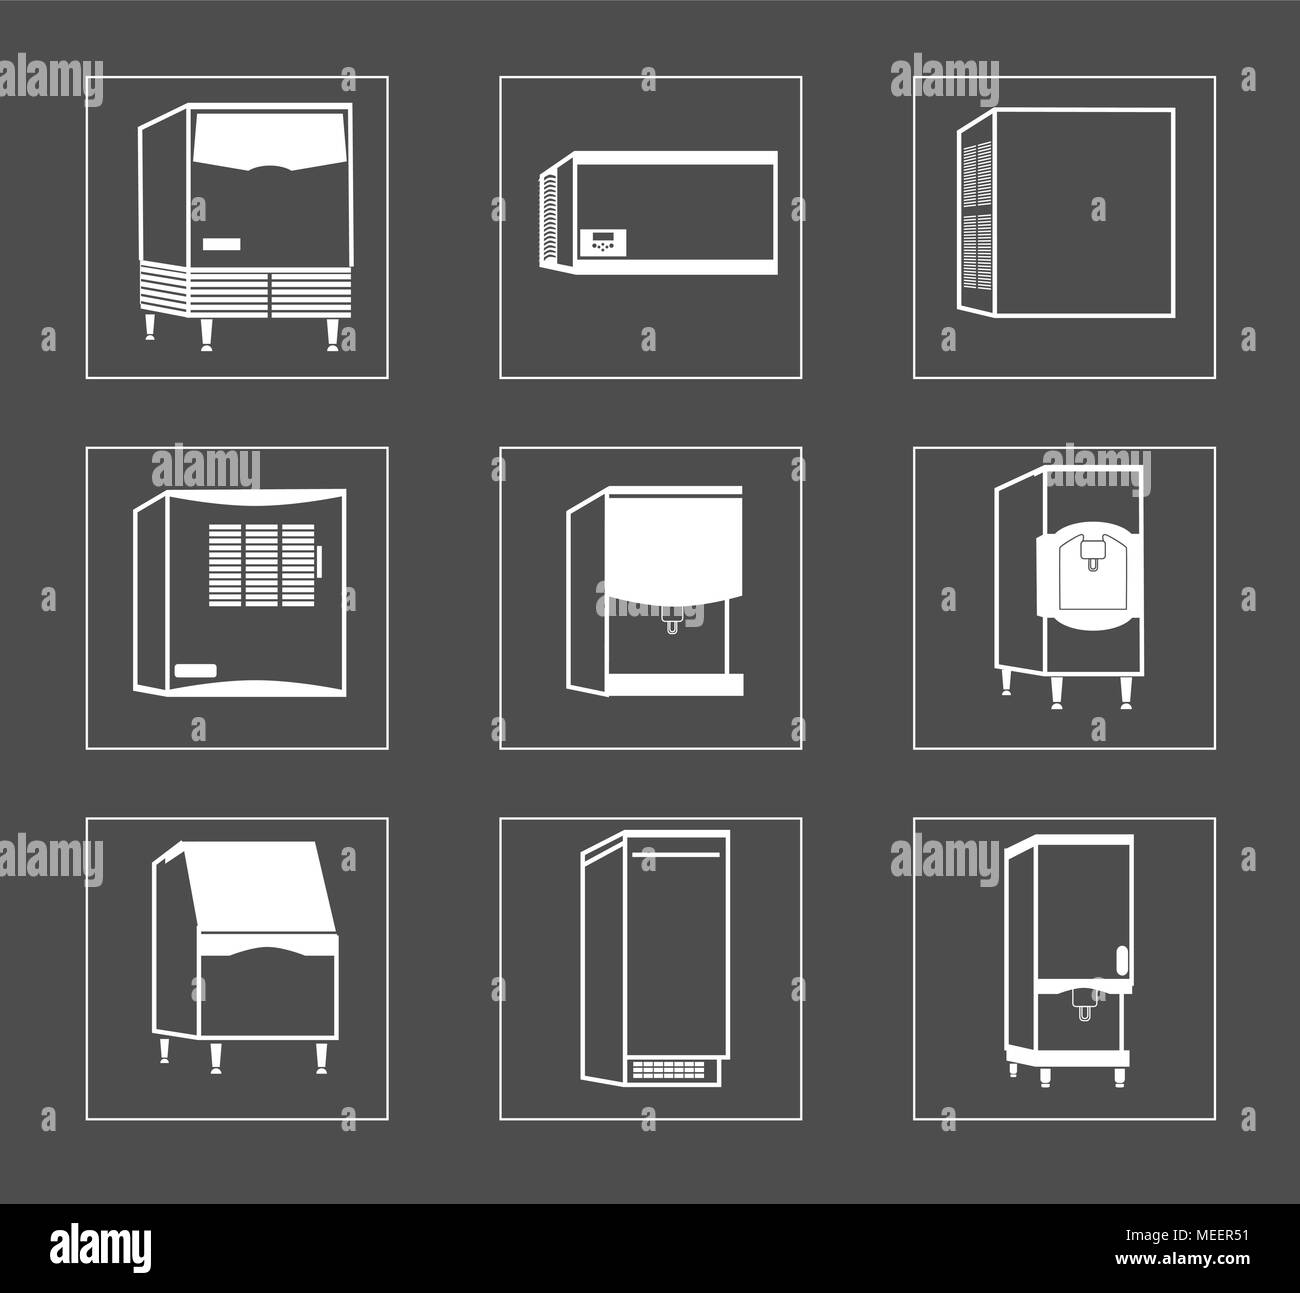 Simple Set of Fridge Related Vector Line Icons. - Stock Image